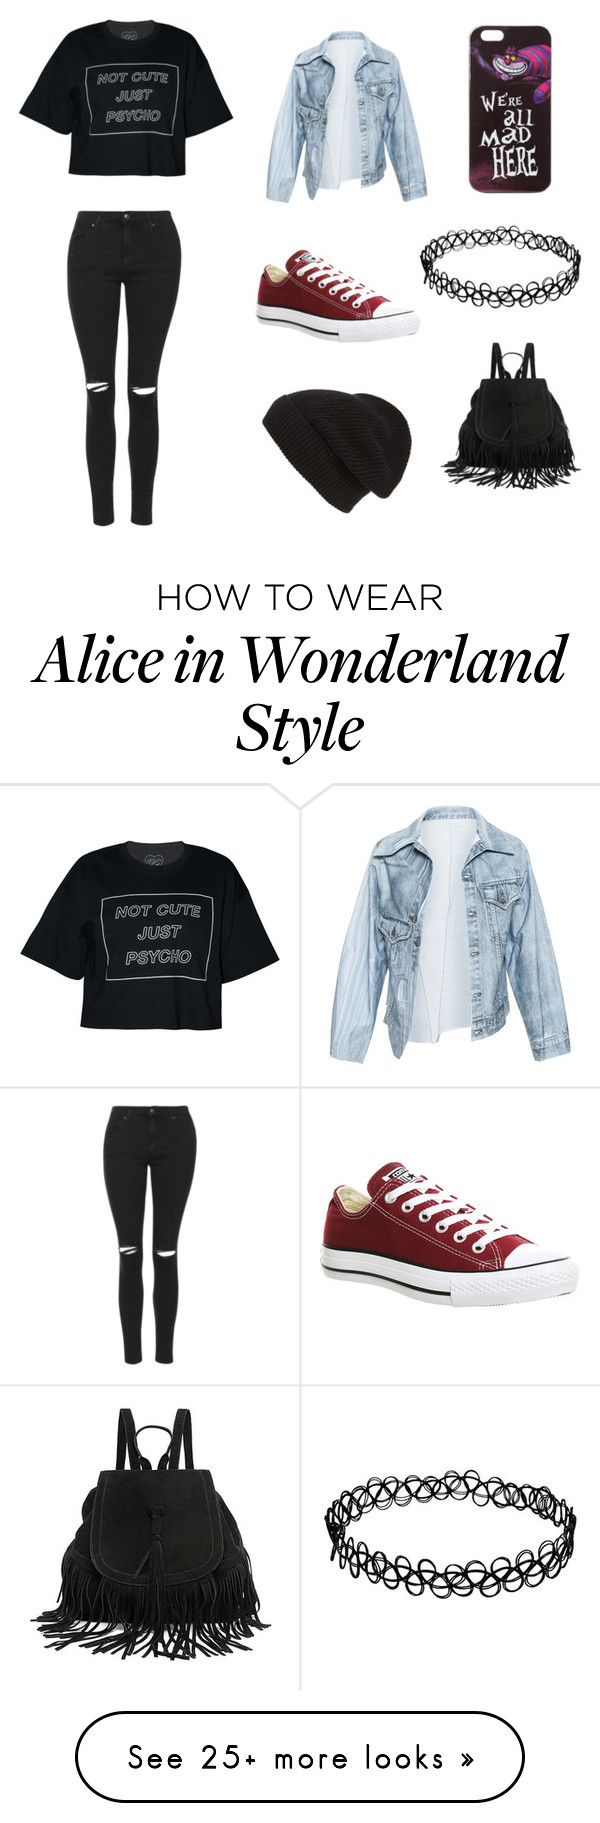 """""""We're all mad here...."""" by yourregularnirvanafan on Polyvore featuring Faustine Steinmetz, Topshop, Converse, Phase 3 and Disney"""